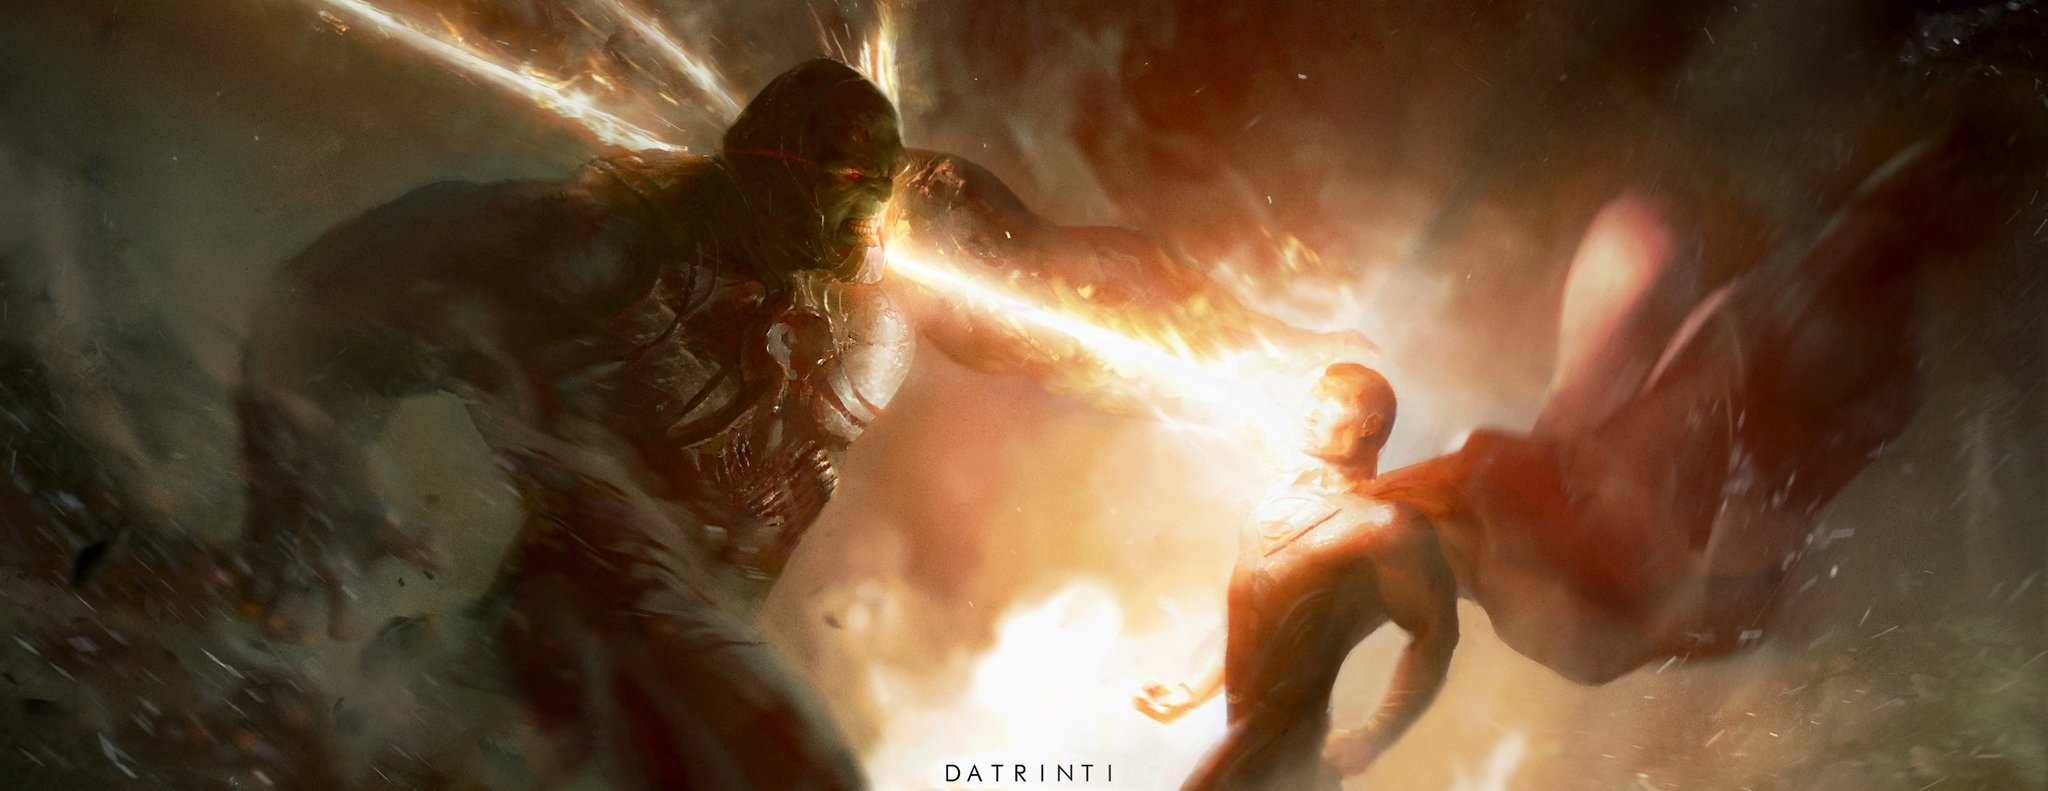 Fan-art featuring Darkseid and Superman by @datrini